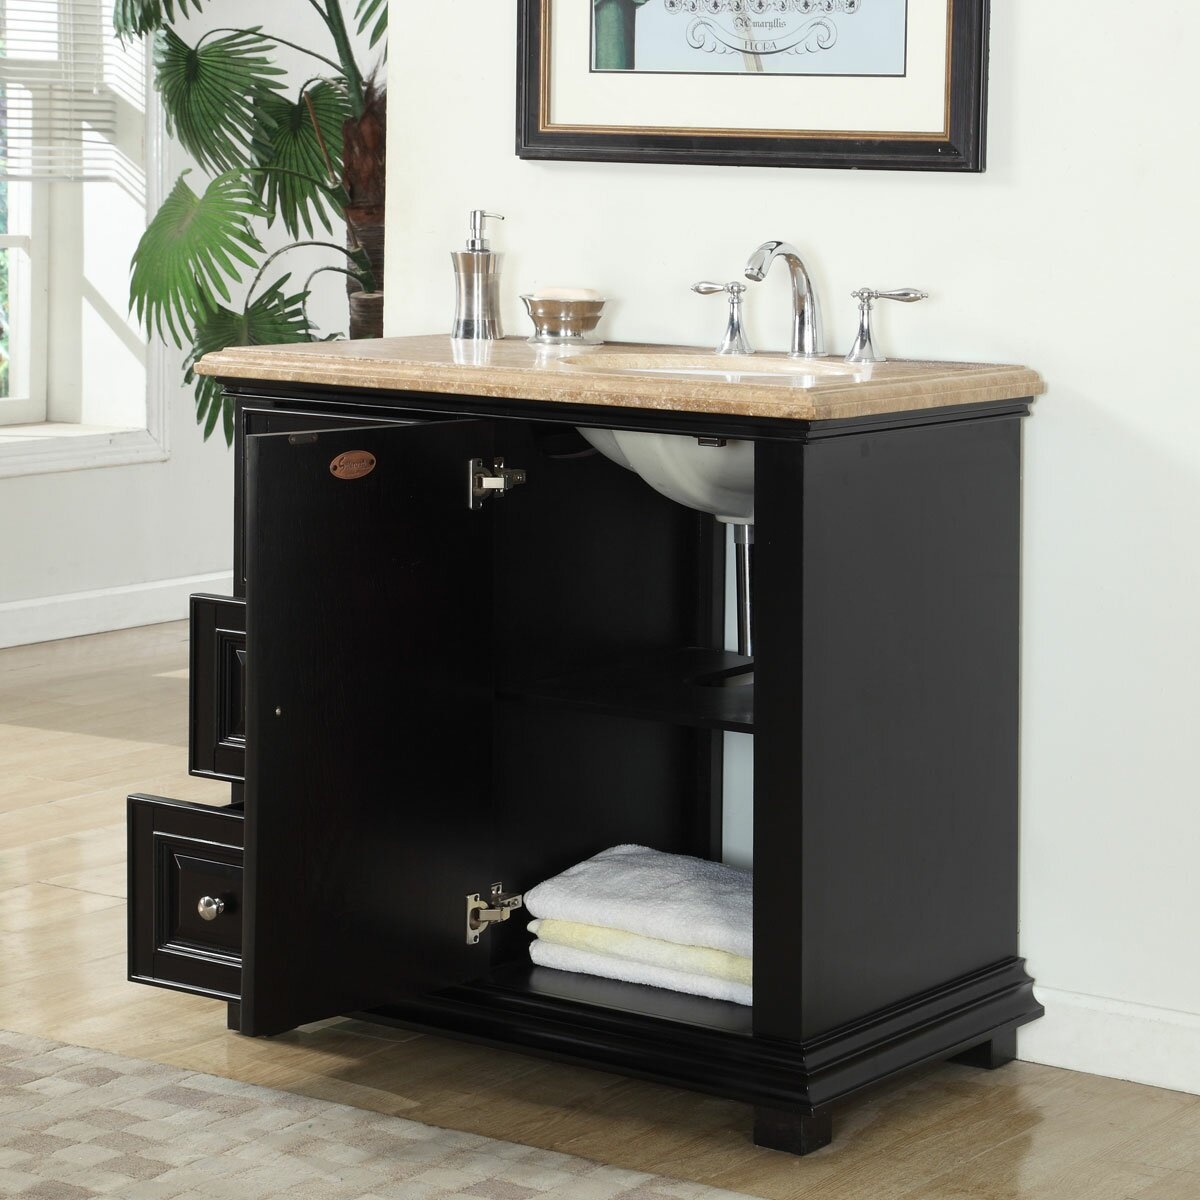 Silkroad Exclusive 36 Single Bathroom Vanity Set With Sink On Right Side Reviews Wayfair